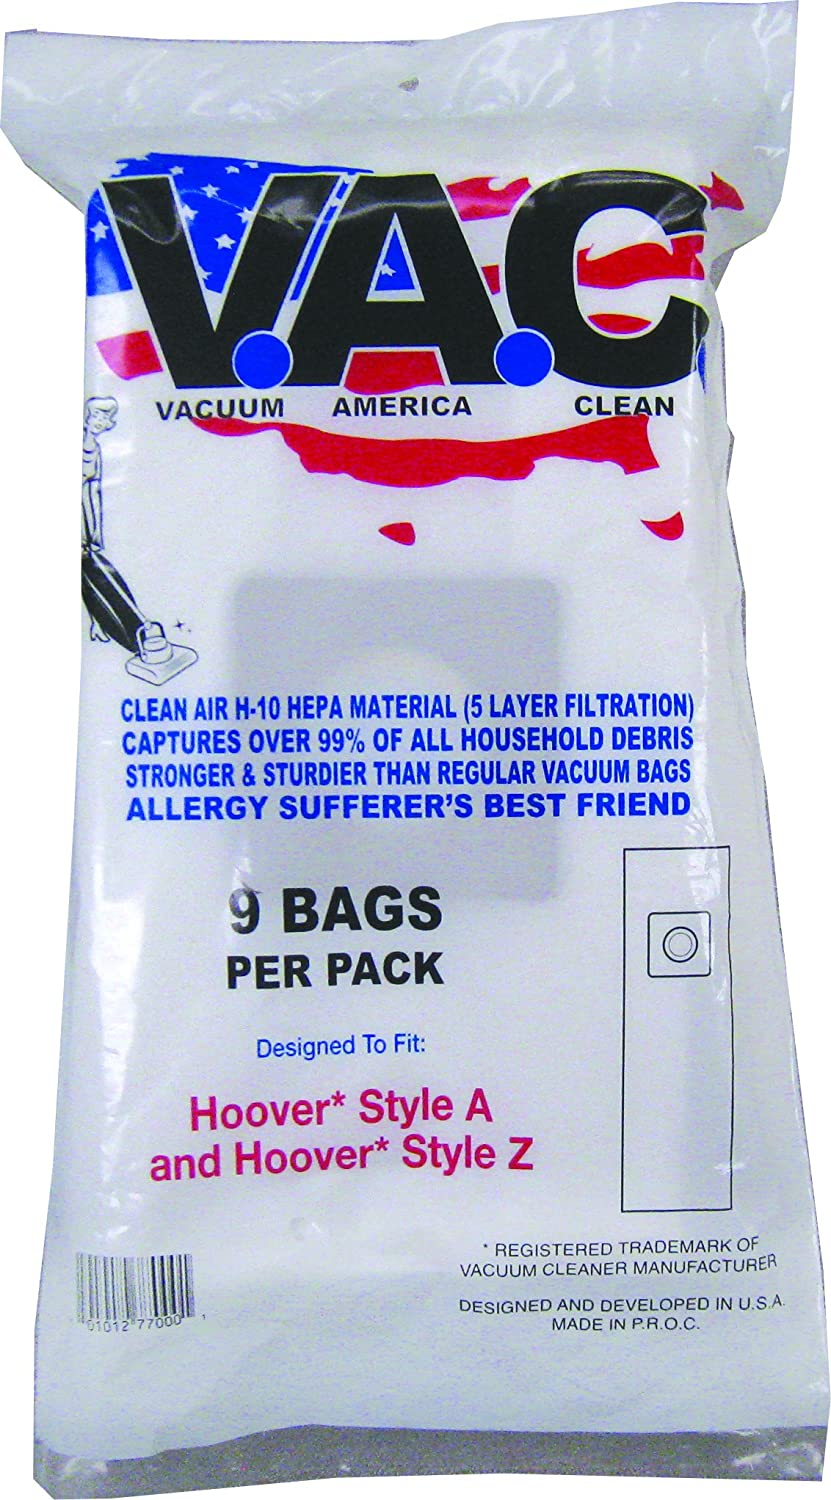 VACUUM AMERICA CLEAN VAC 29 Hoover Style A and Hoover Style Z H-10 HEPA Filtration (Pack of 9)